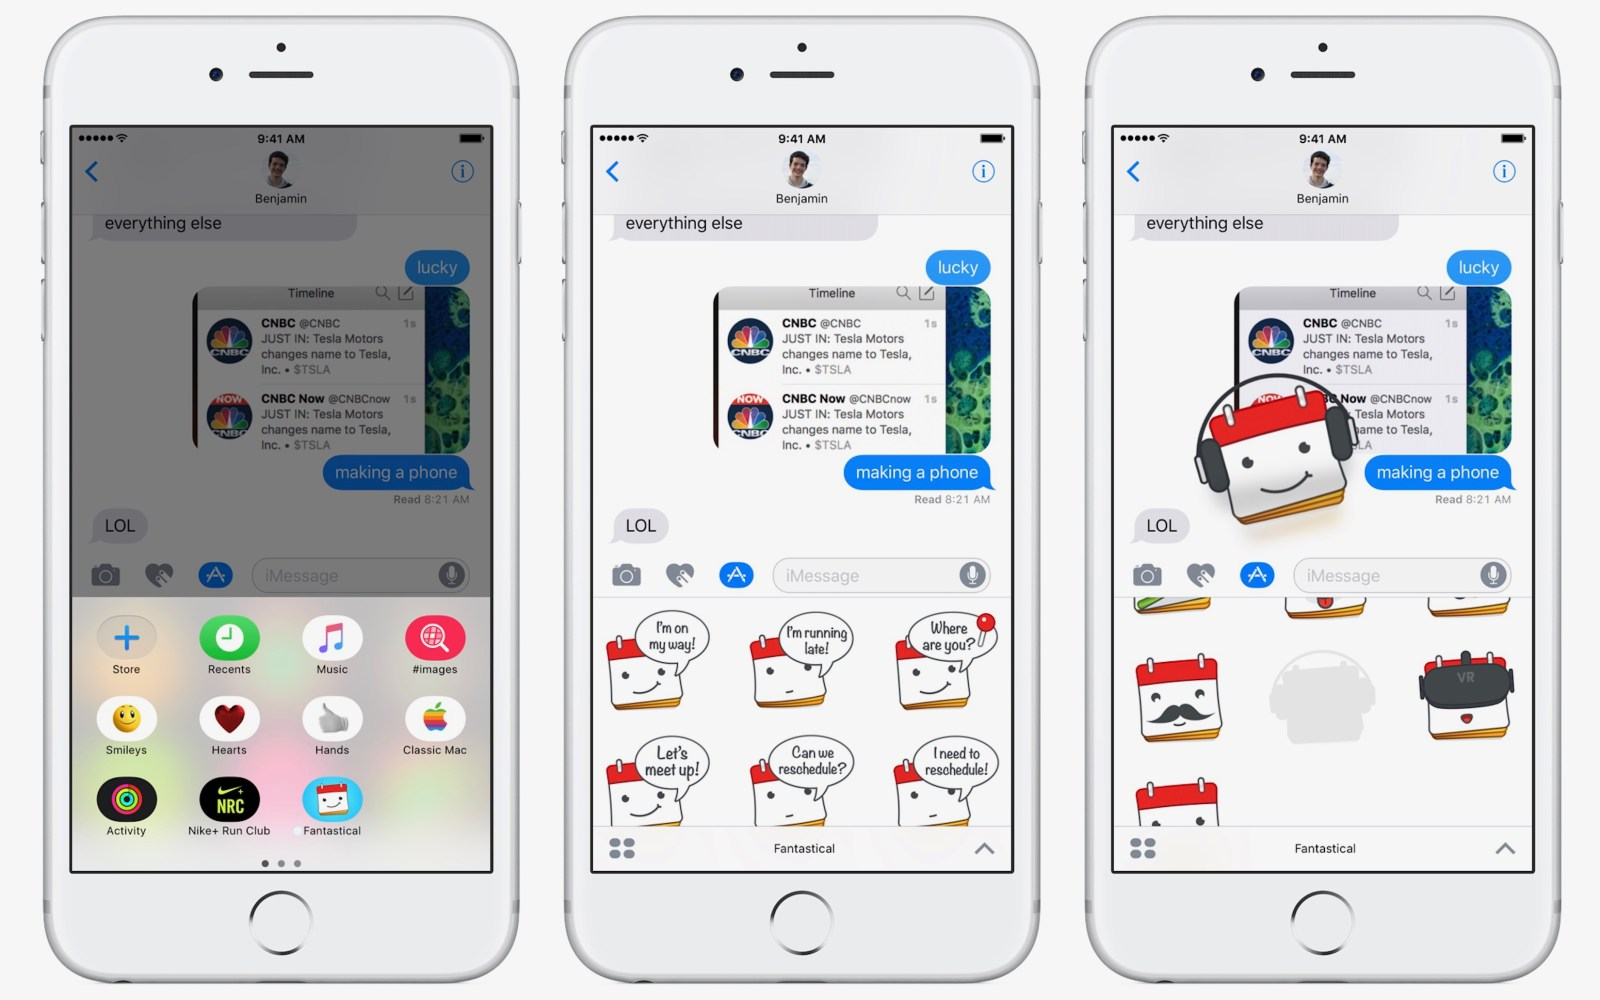 Fantastical for iPhone and iPad gains iMessage sticker pack, rich notifications for calendar alerts and reminders